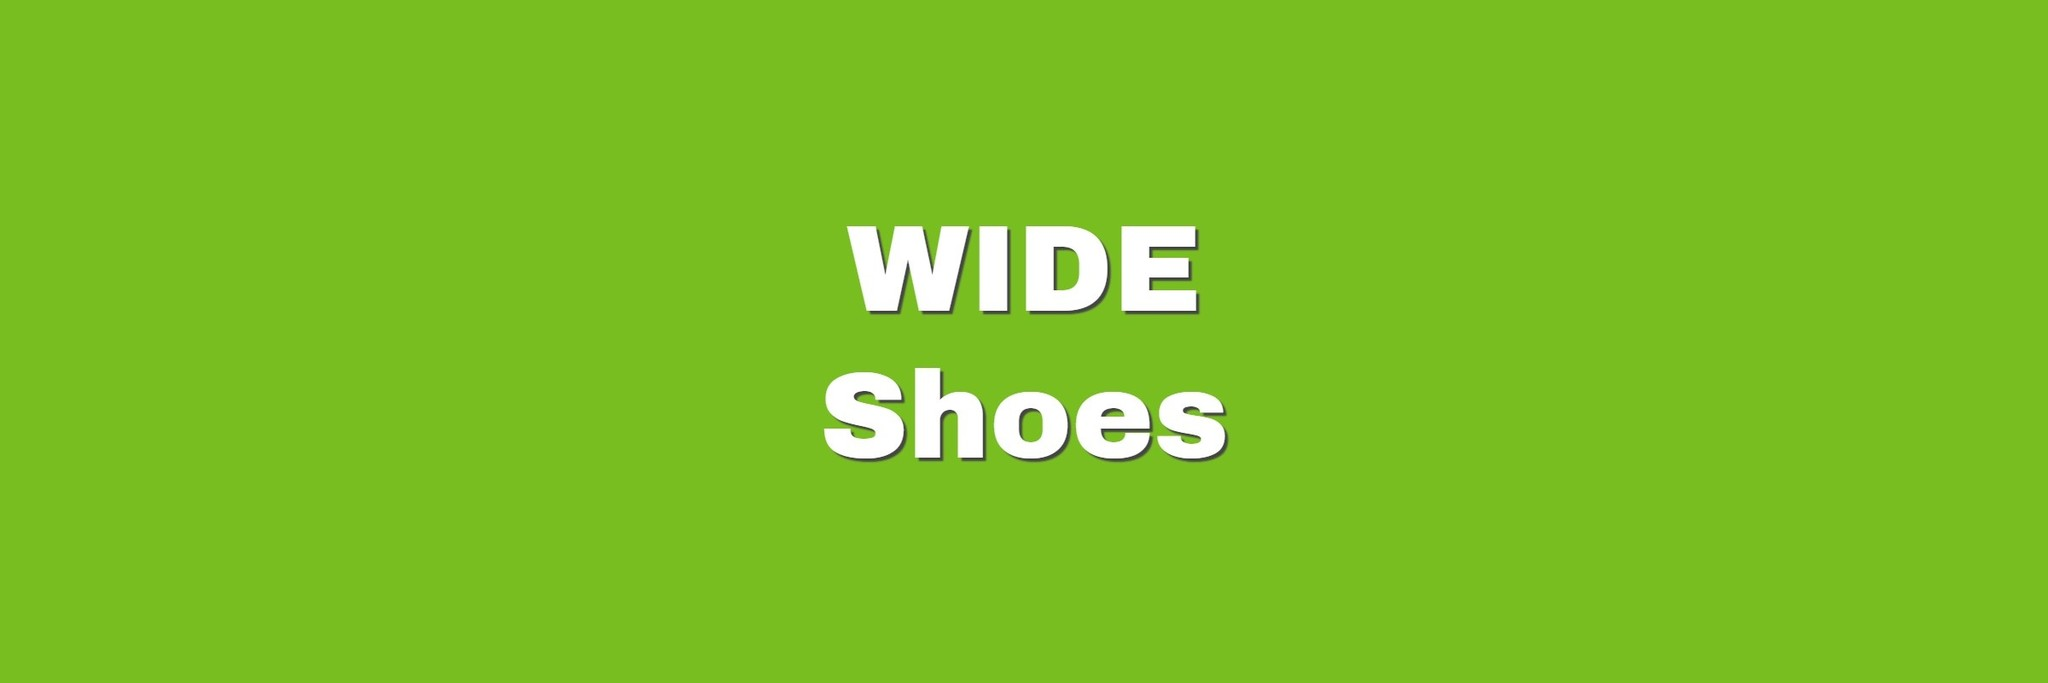 THERAPEUTIC WIDE SHOES FOR HARD TO FIT FEET